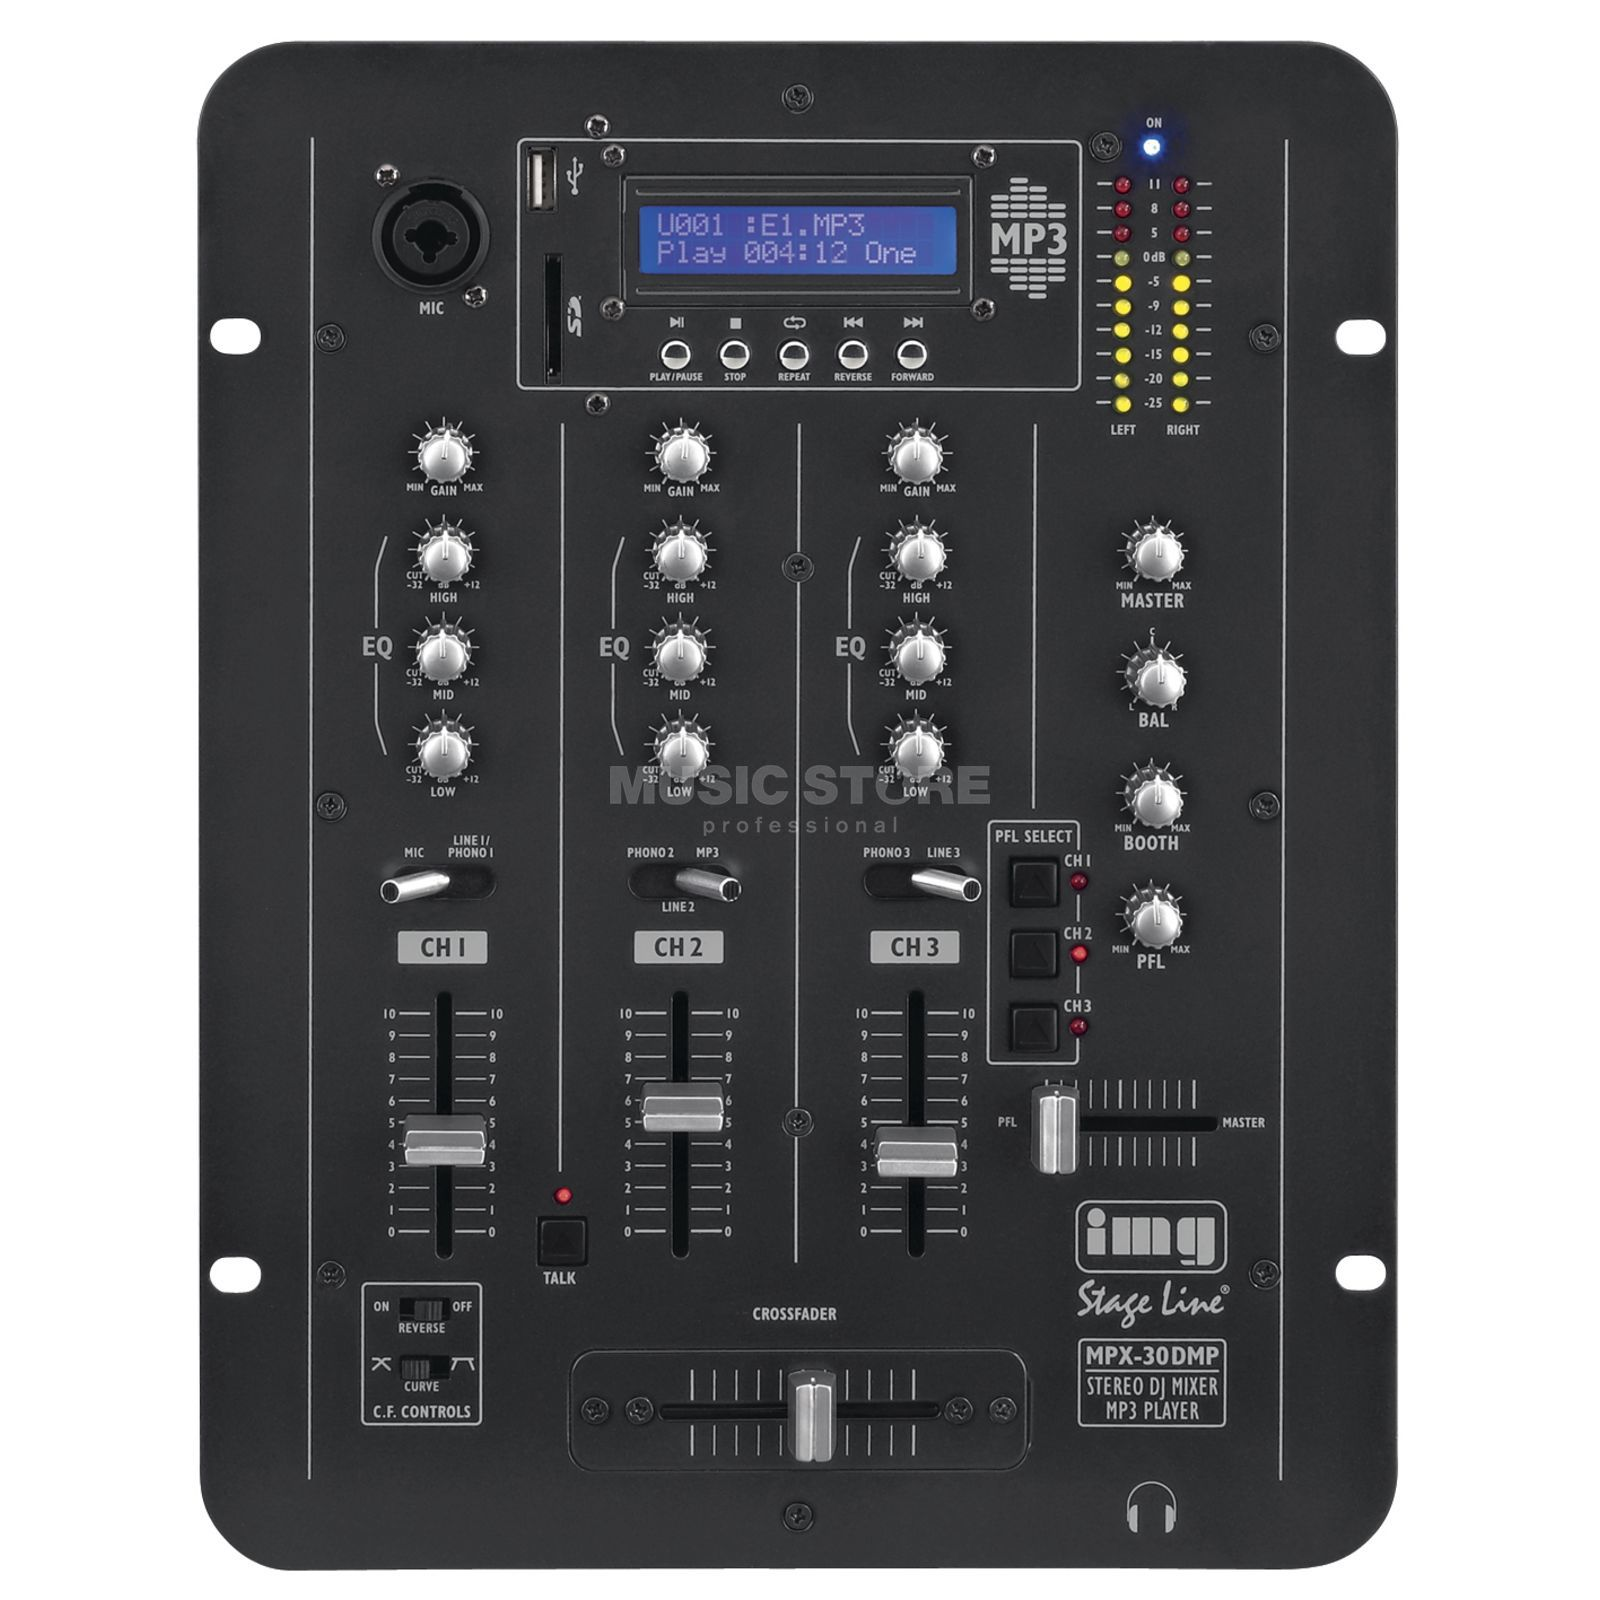 IMG STAGELINE MPX-30DMP 3-Kanal DJ-Mixer m. MP3-Player Produktbild